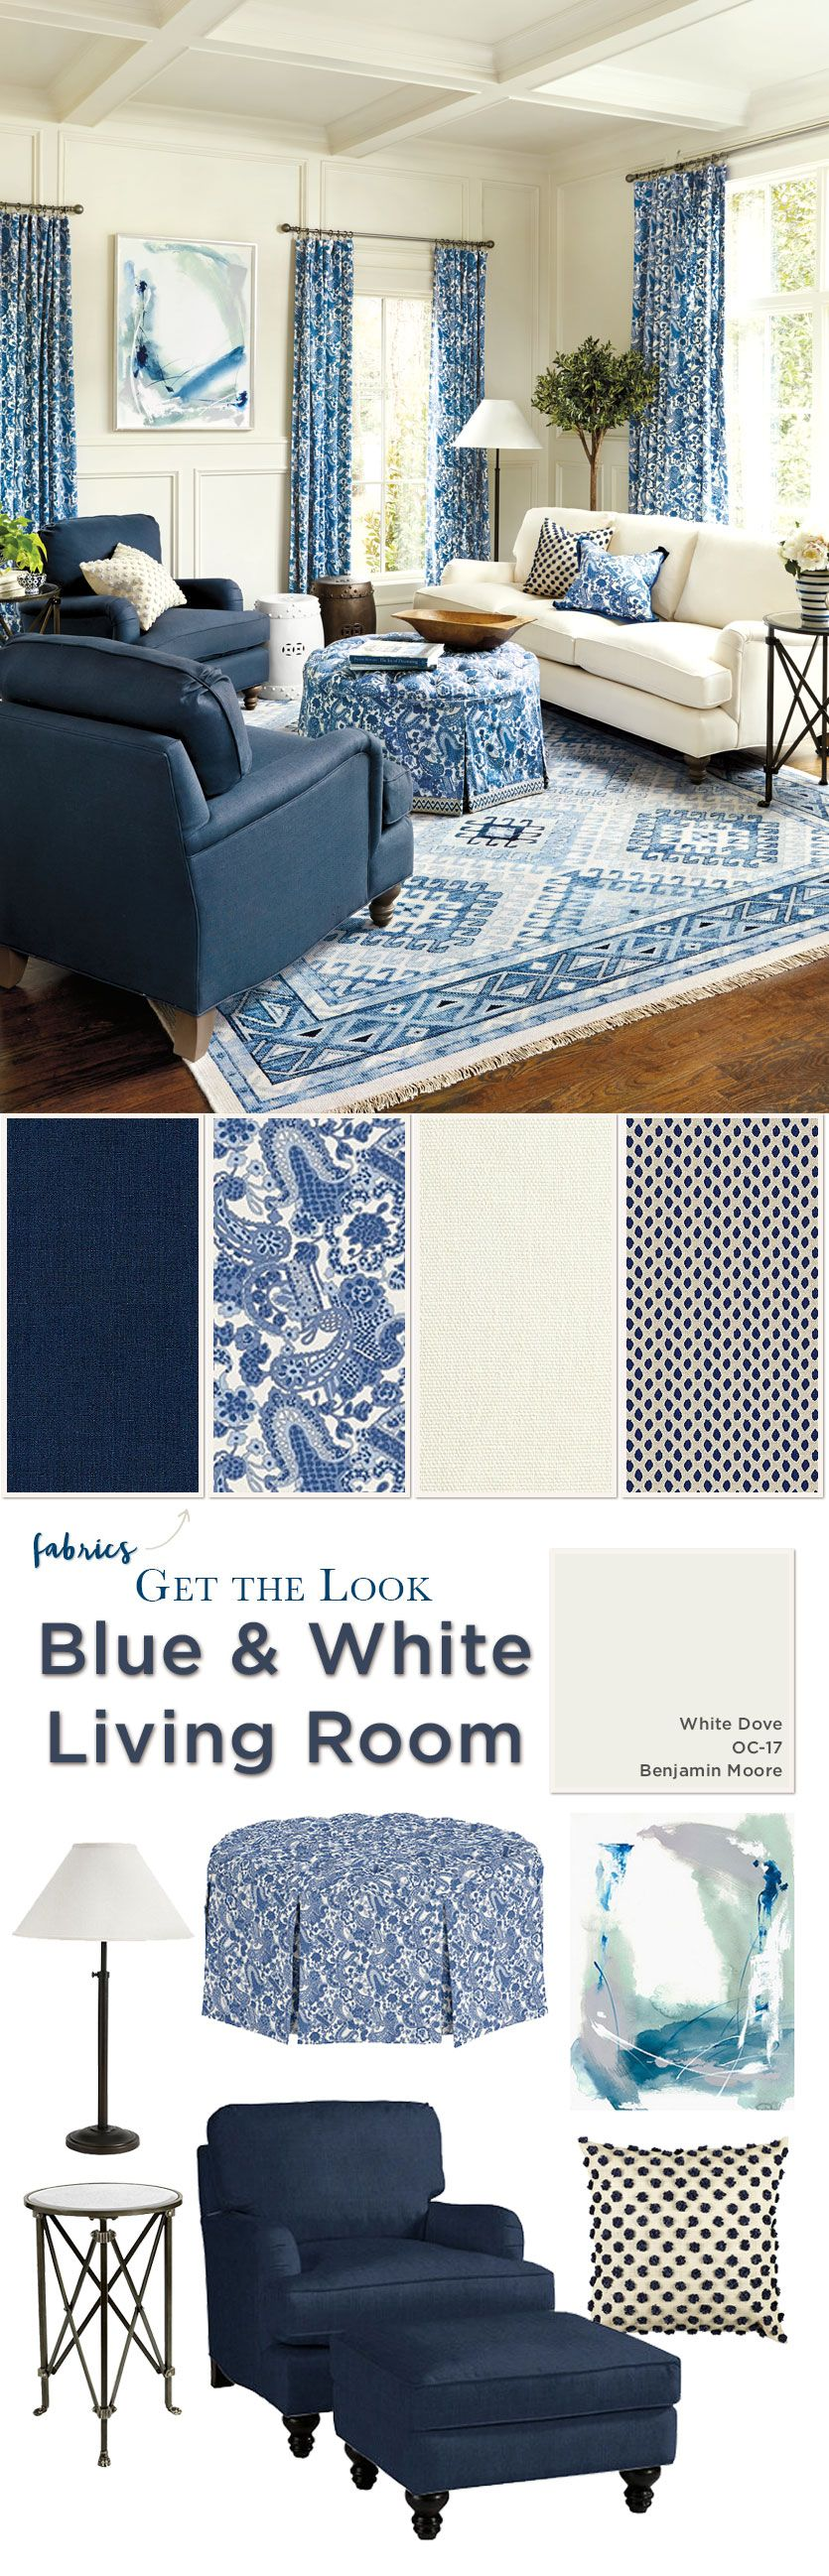 Blue and white living room - Room Get The Look Of This Blue And White Living